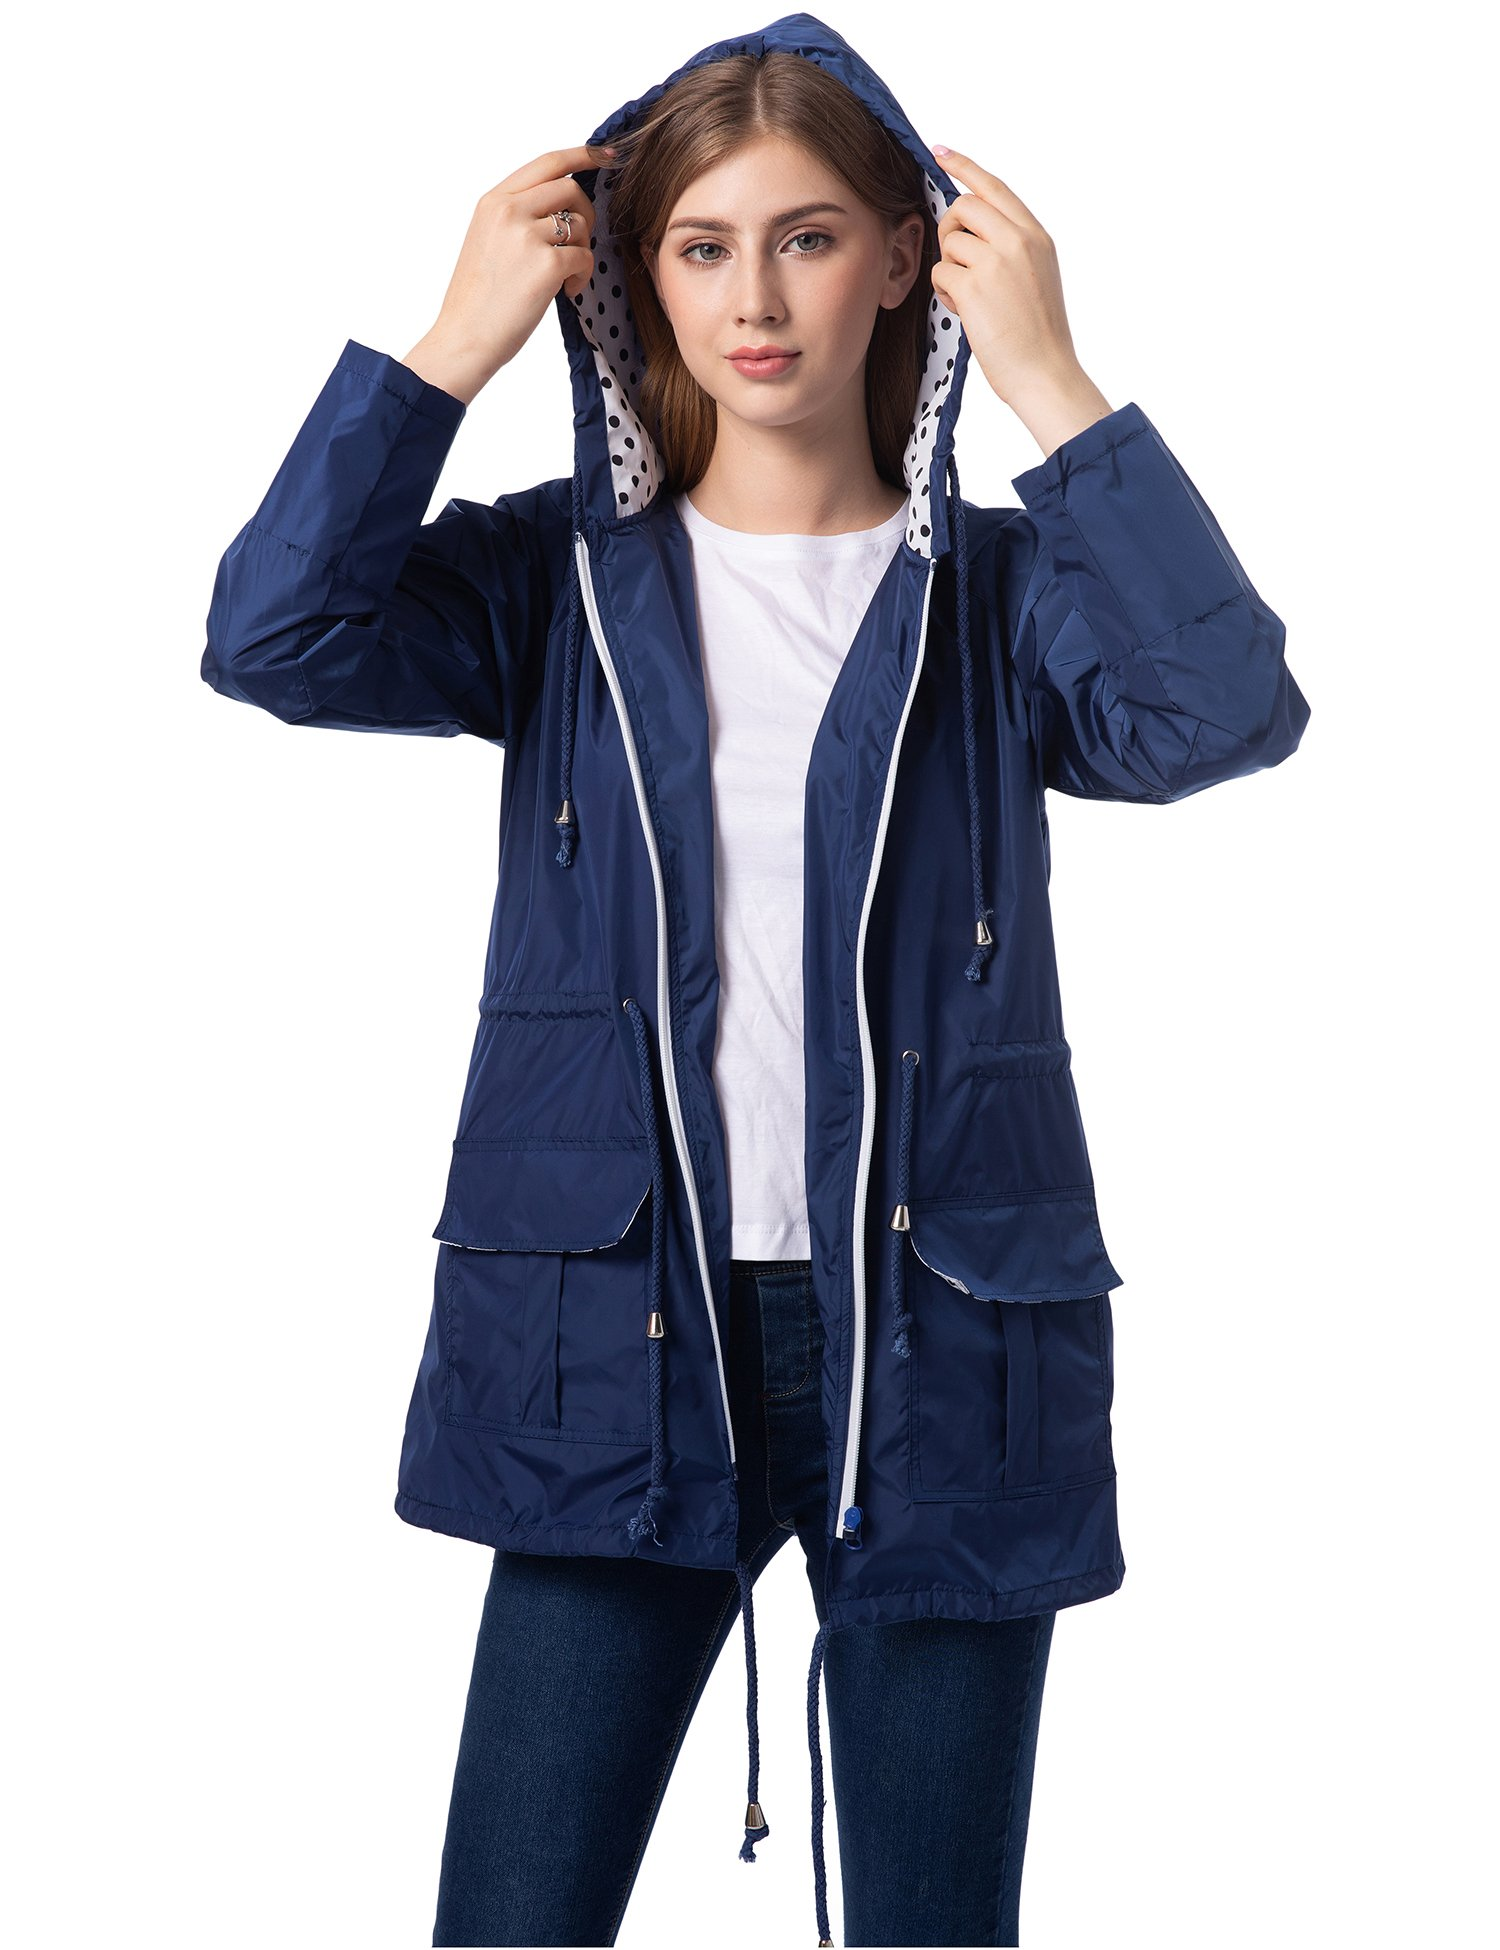 Romanstii Travel Raincoat Women Waterproof Casual Jackets with Hood Hiking Sports Navy Blue XL